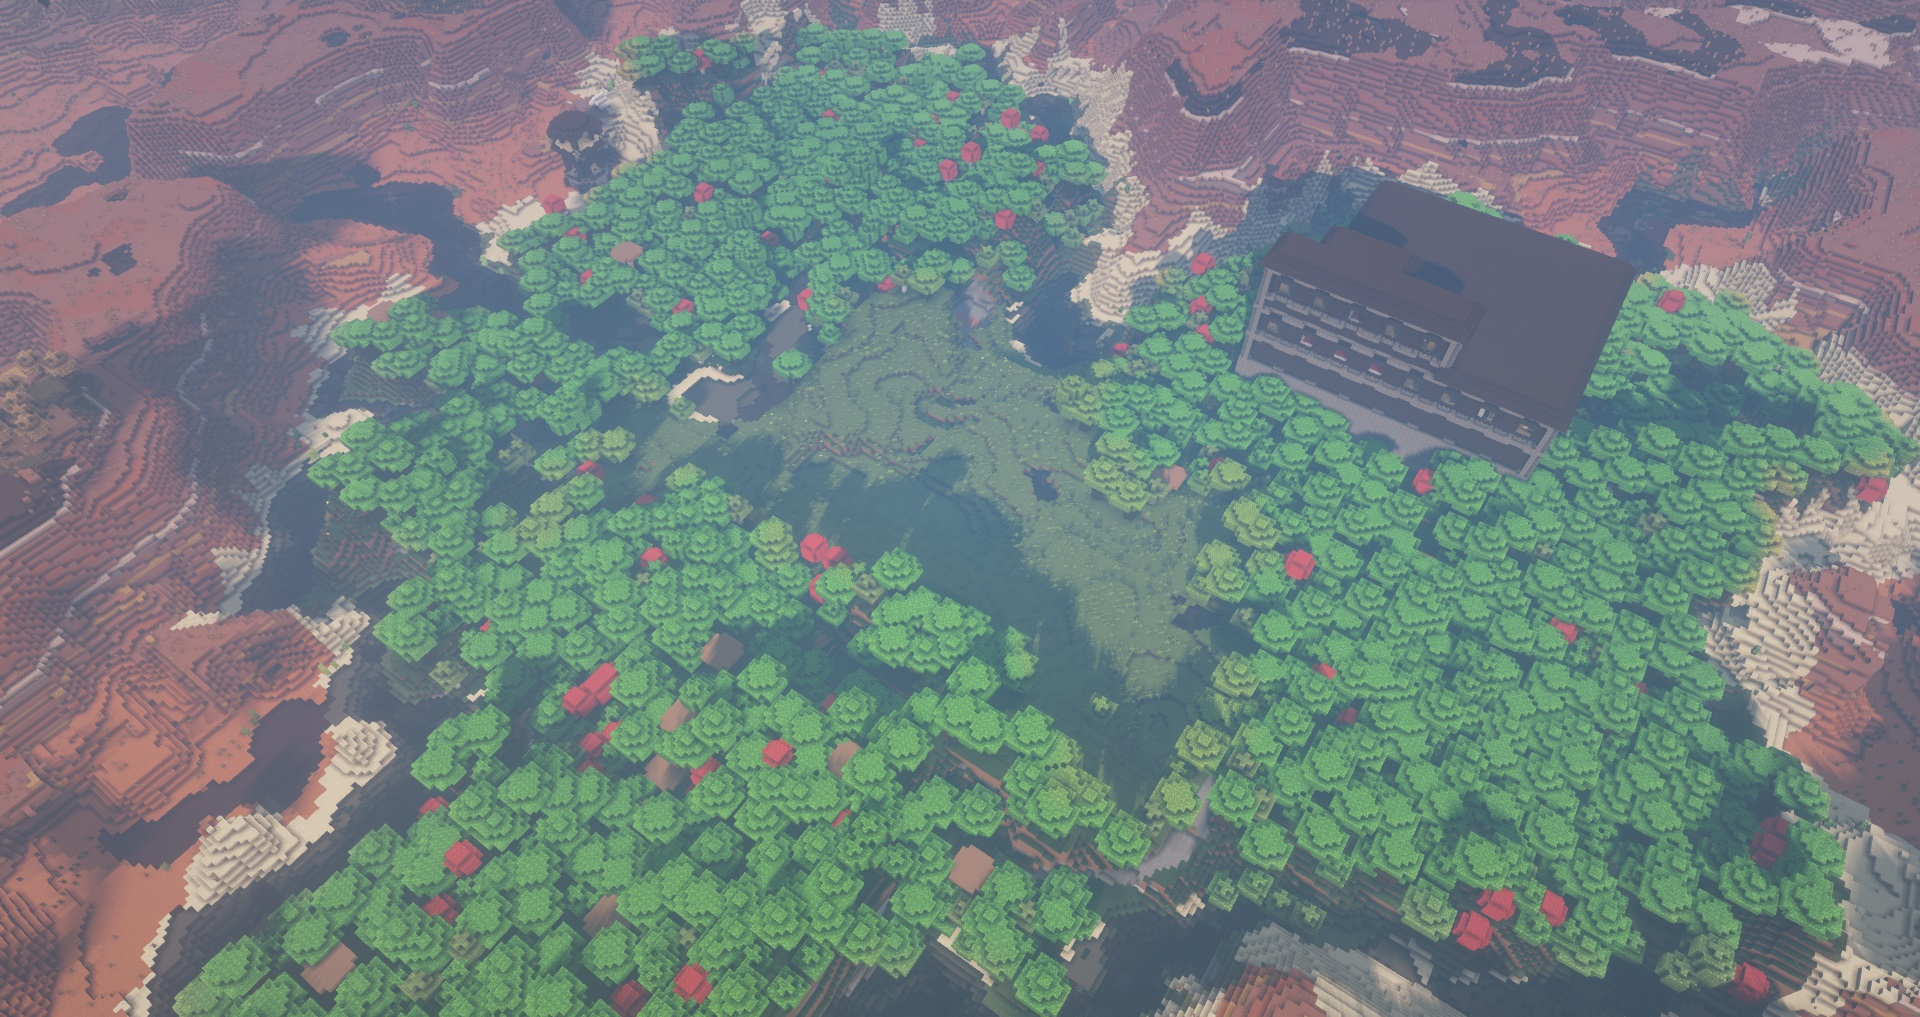 Minecraft seed - an aerial view of a forest shaped like a heart with a large mansion inside